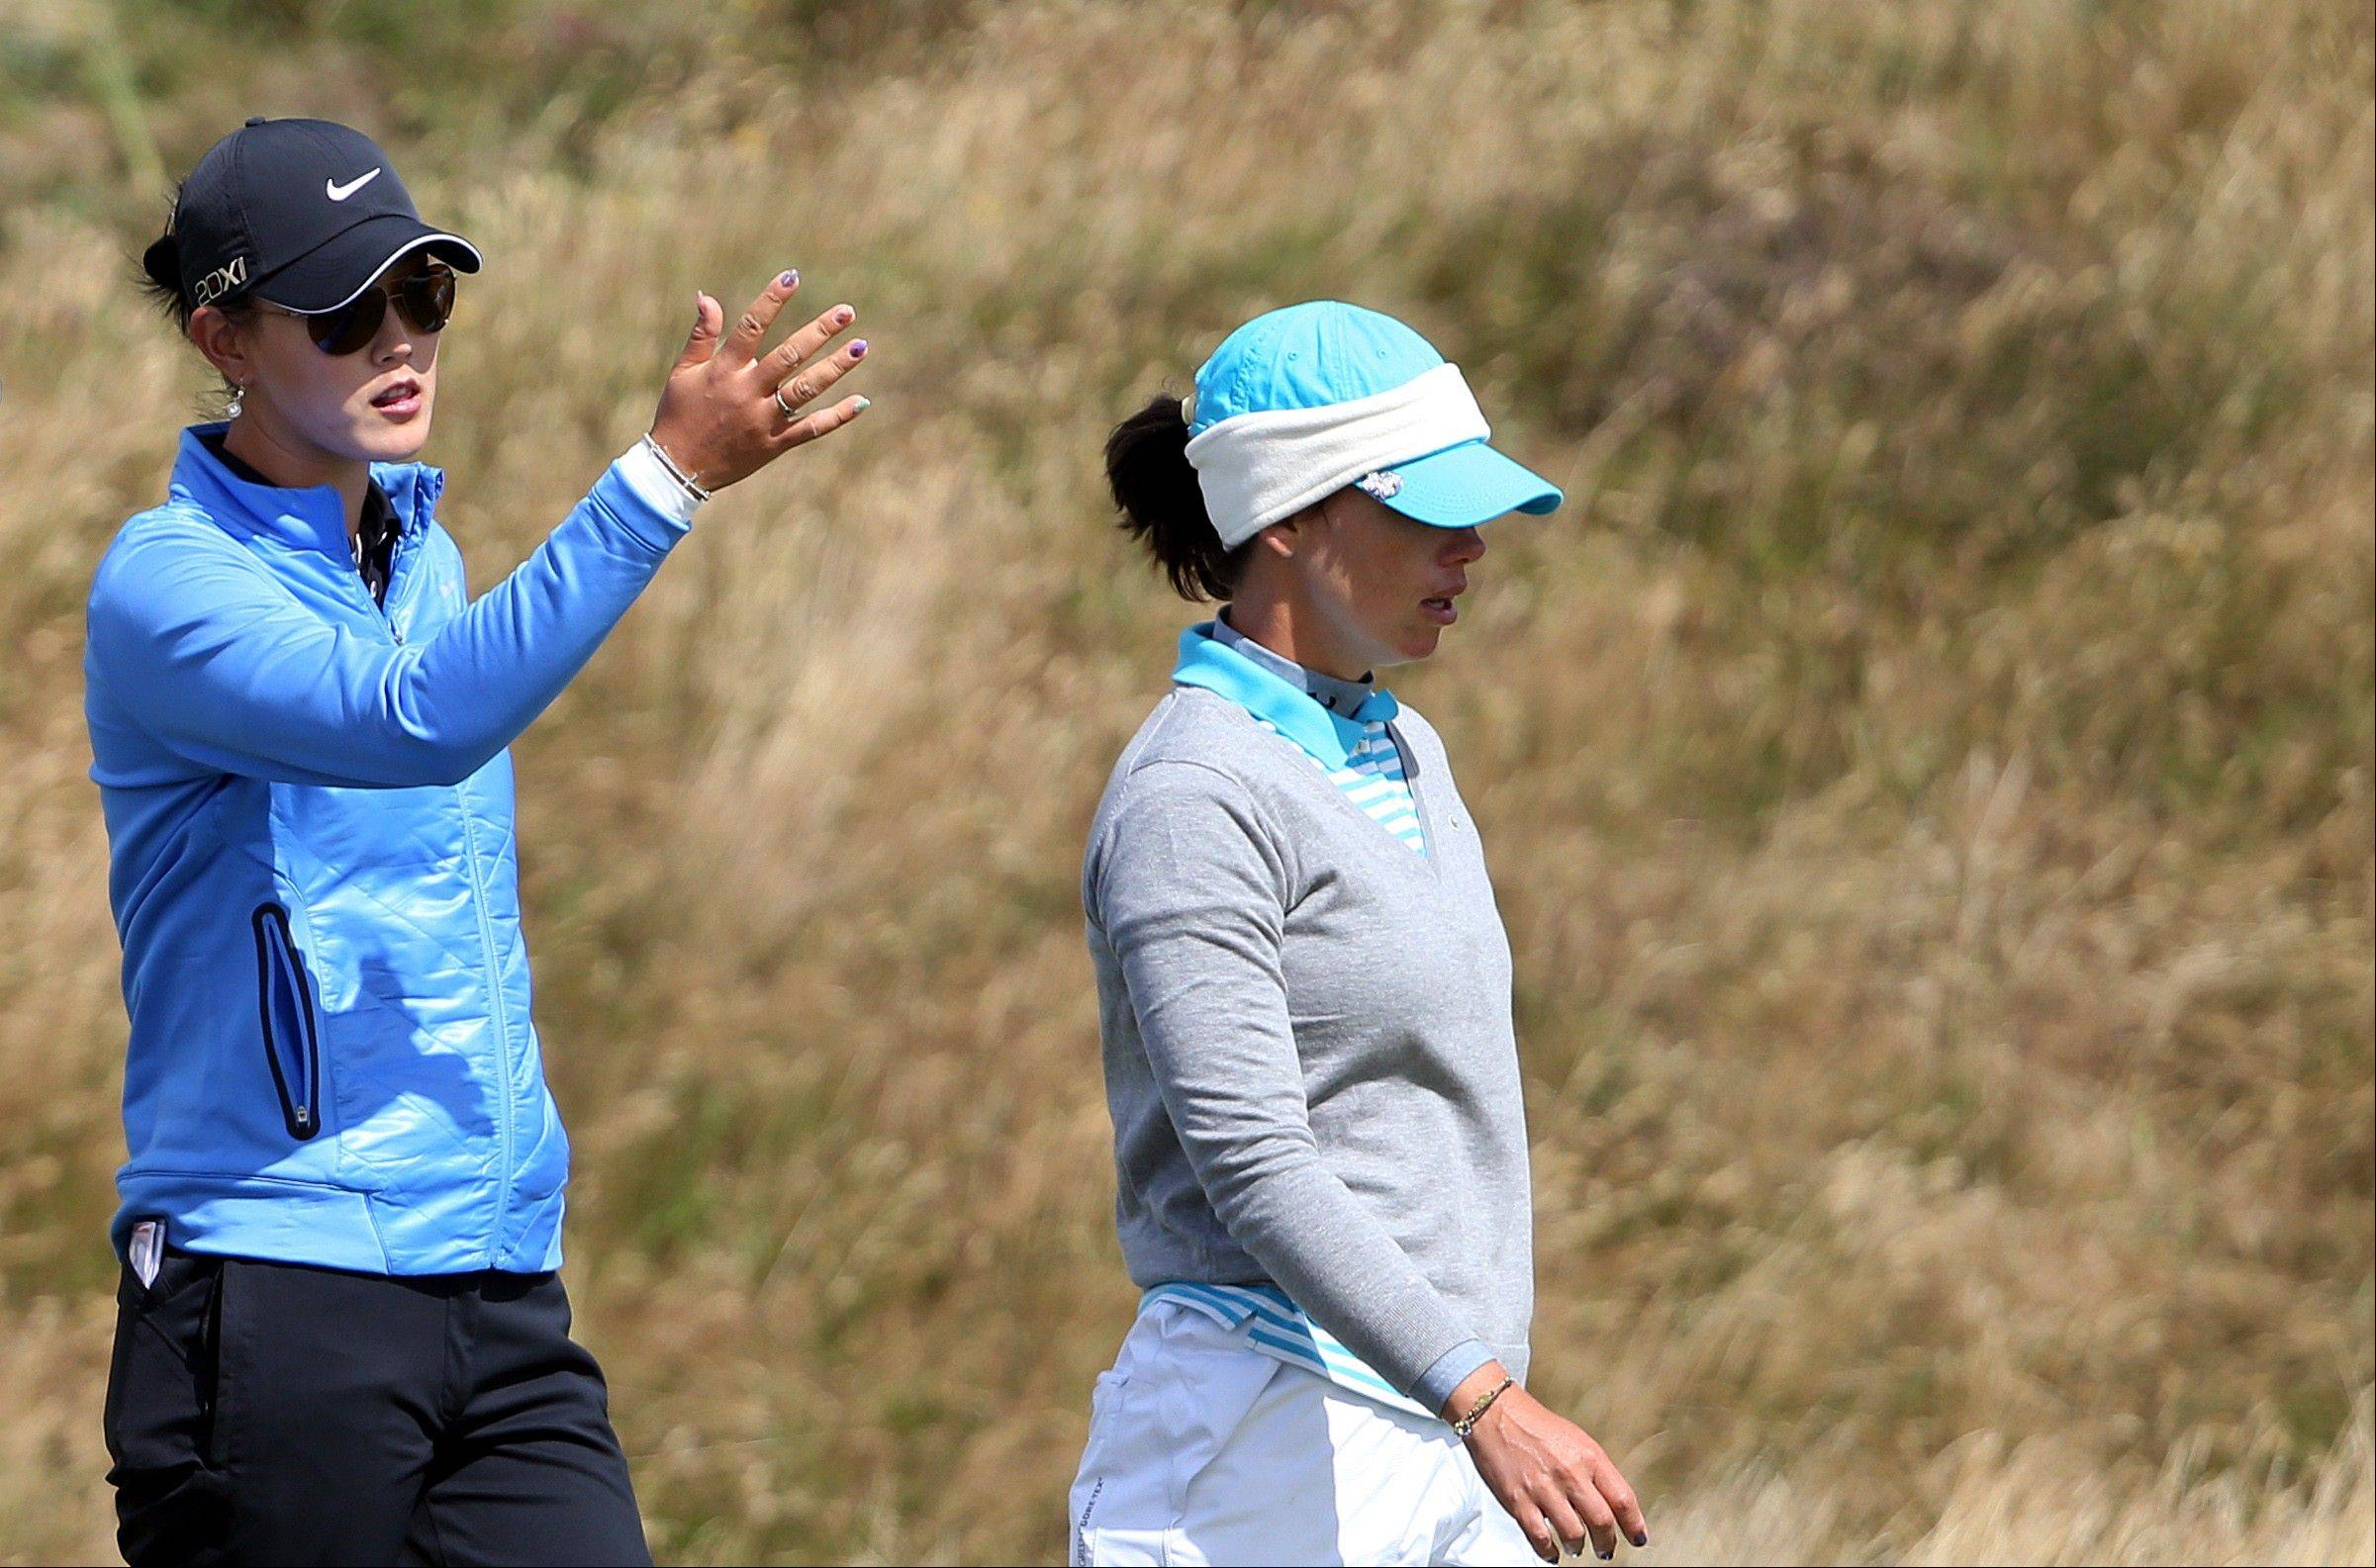 Michelle Wie of the US, left, reacts to France's Karine Icher, right, after play has been suspended due to the high winds on the 13th fairway during the third round of the Women's British Open golf championship on the Old Course at St Andrews, Scotland, Saturday Aug. 3, 2013.